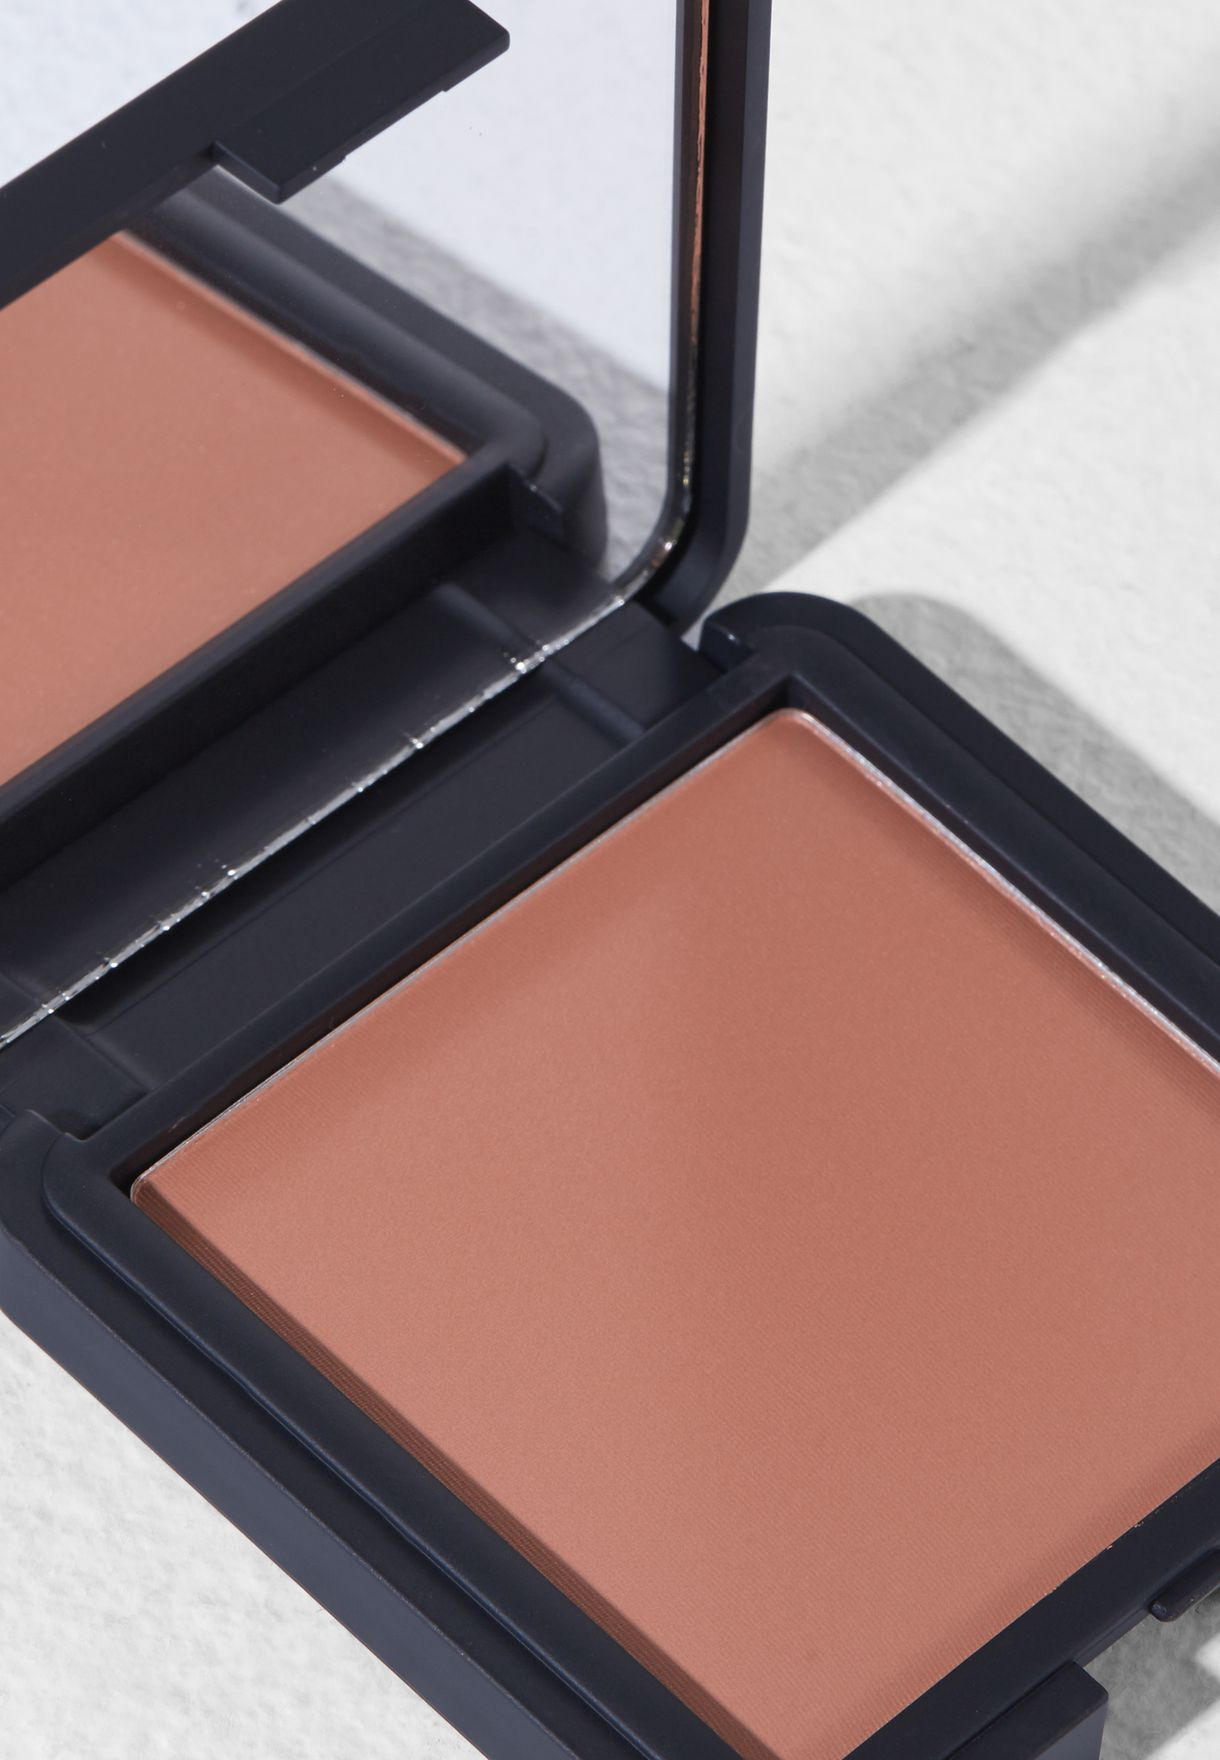 The Bronzer Powder 104